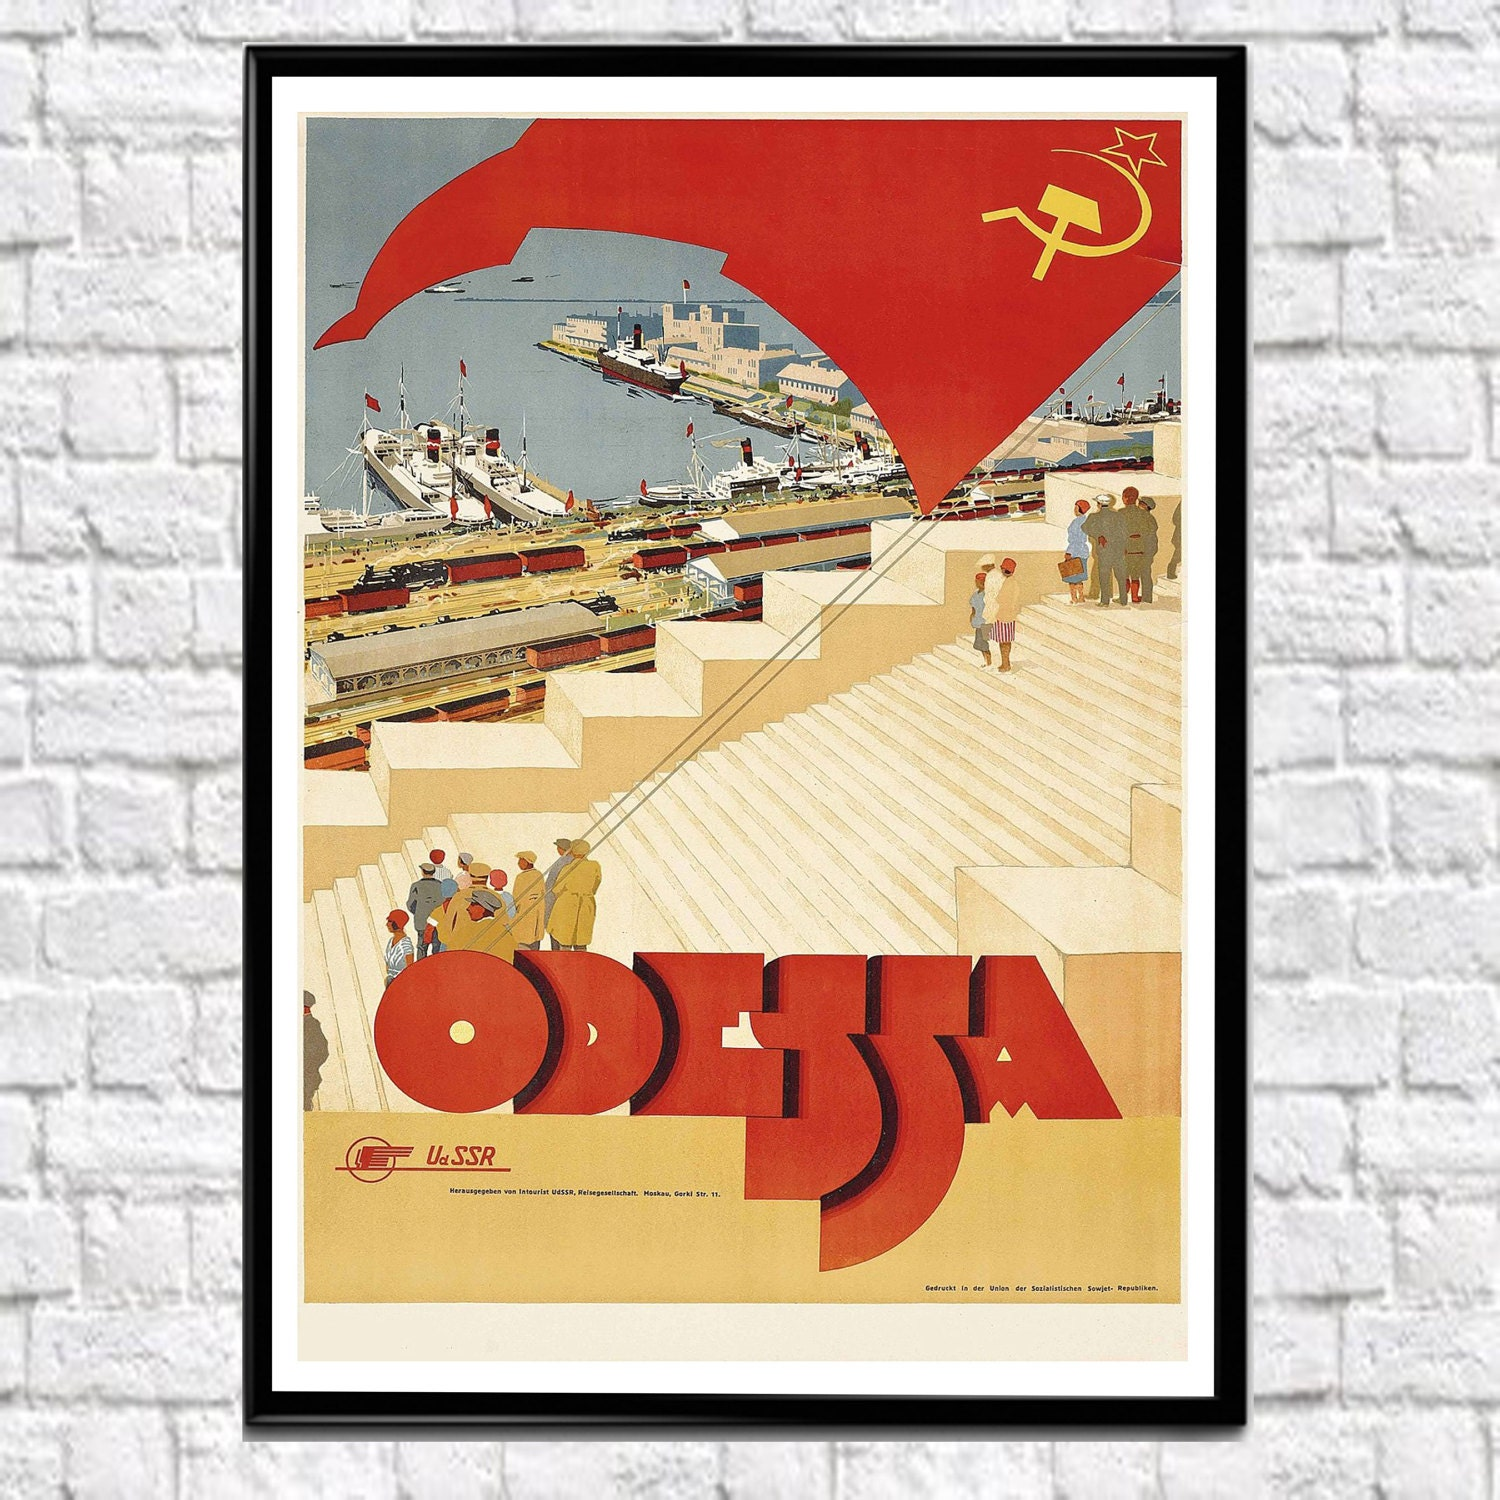 Russian Travel Poster Odessa Russia Travel Poster Print 1950s Odessa ...